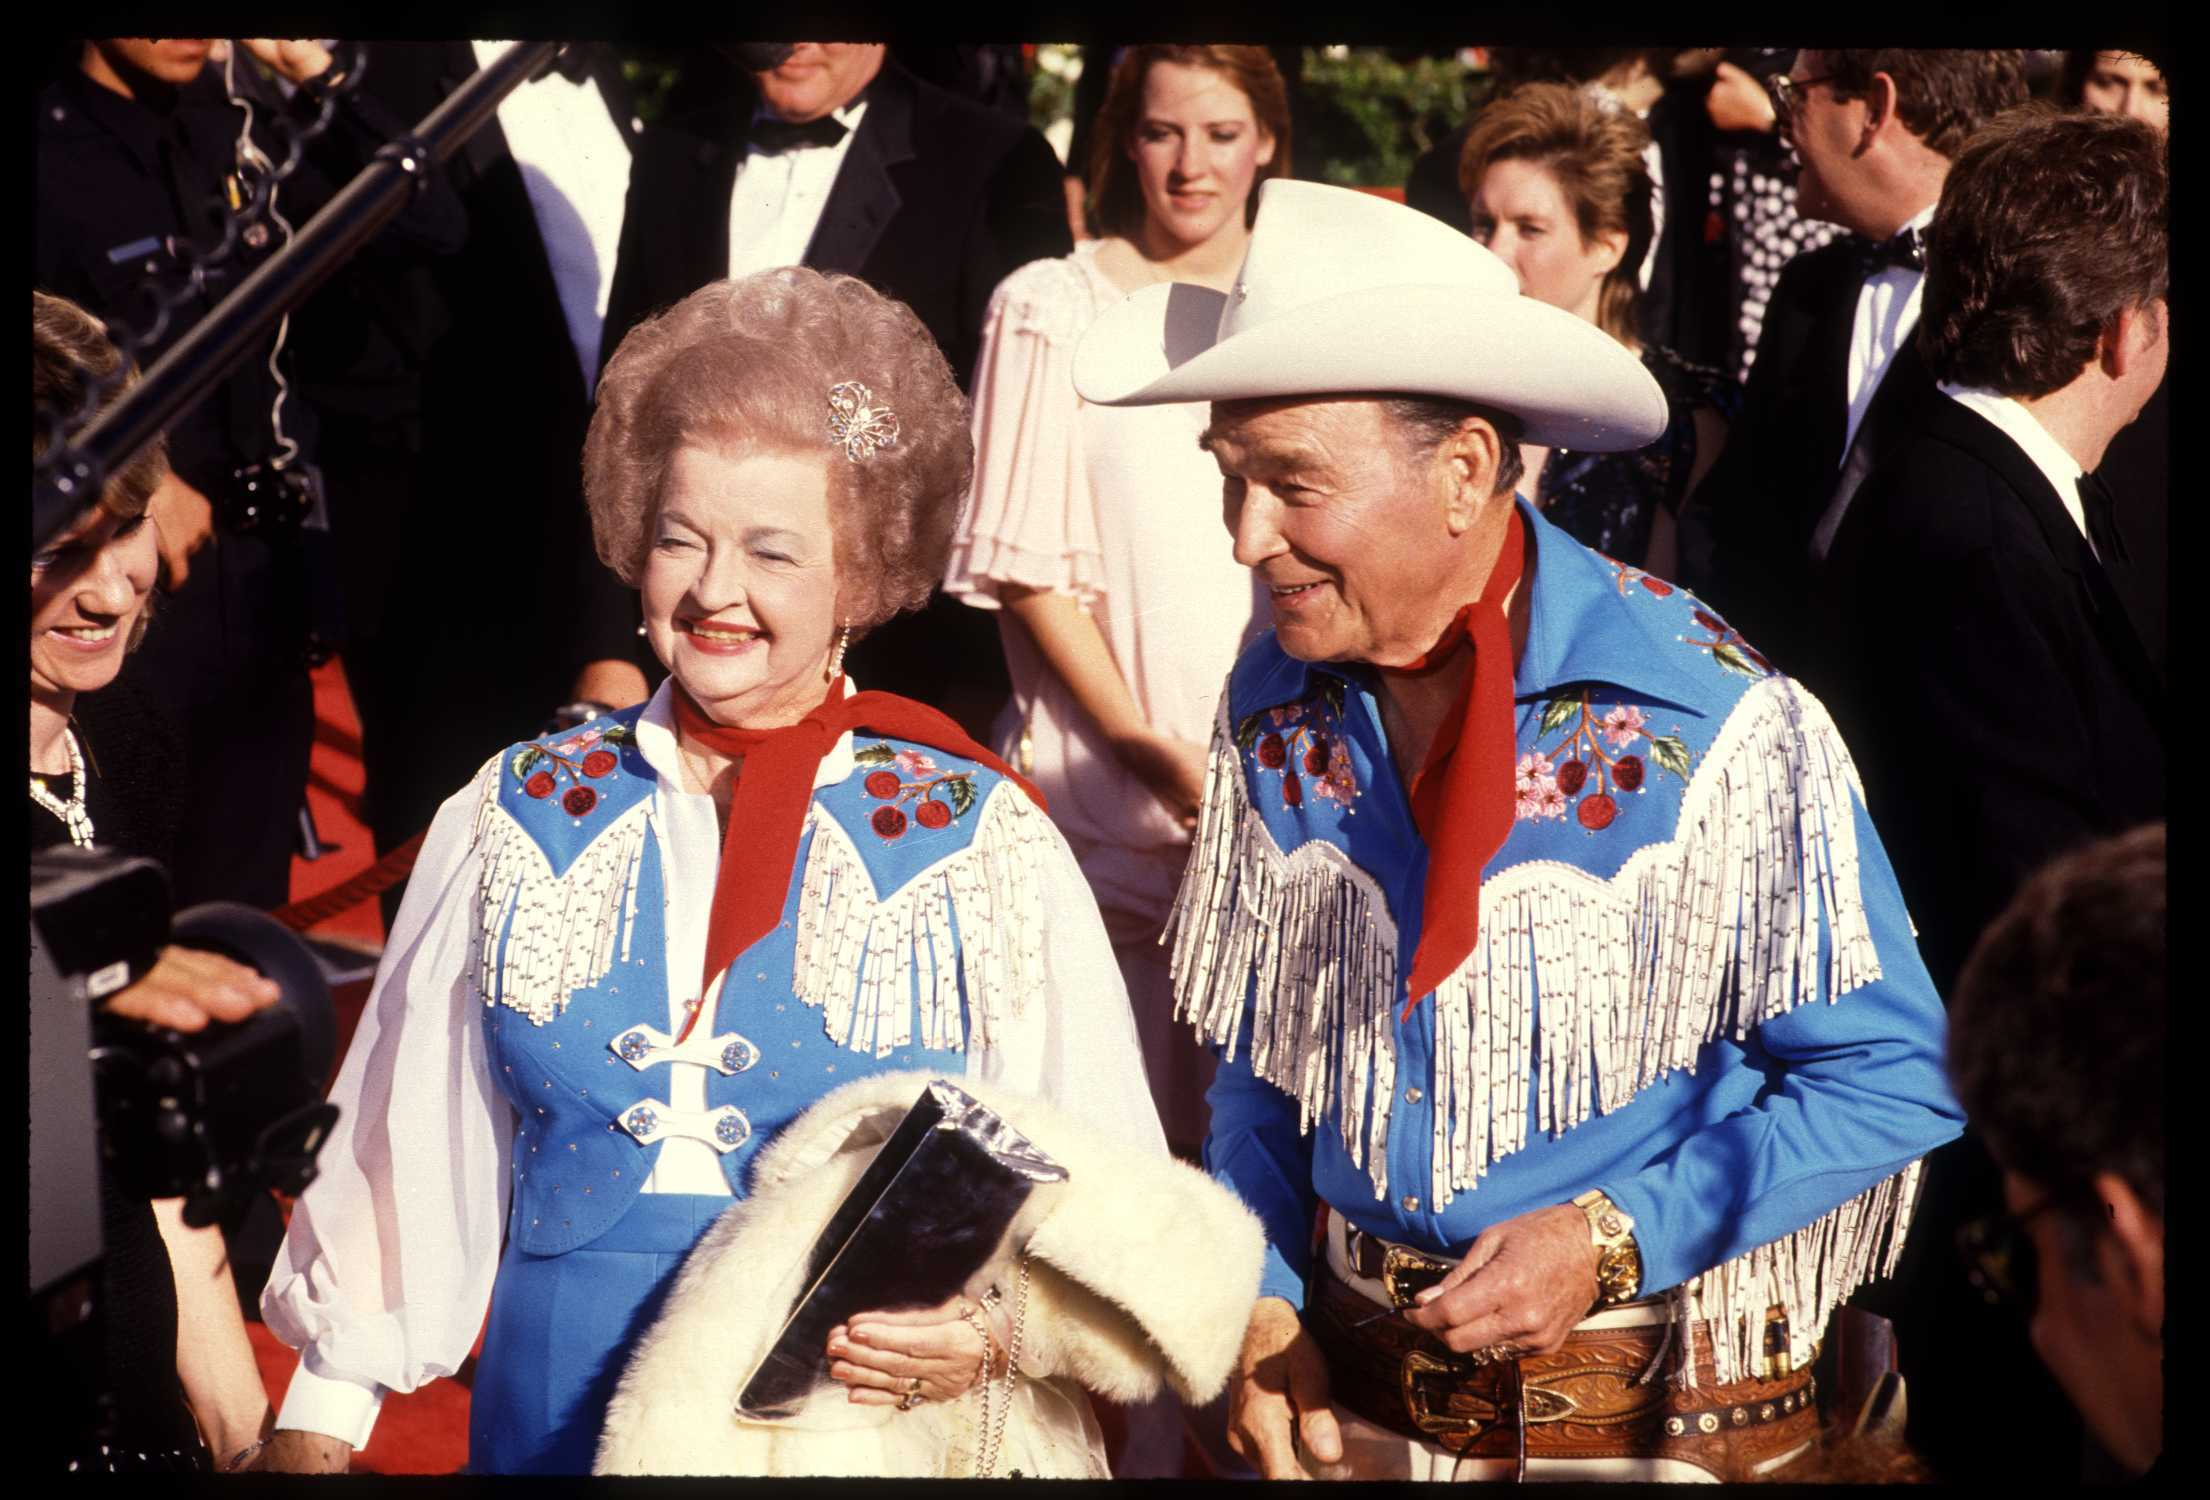 Roy Rogers And Dale Evans Arriving At The 1991 Oscar Show. | Source: Getty Images.